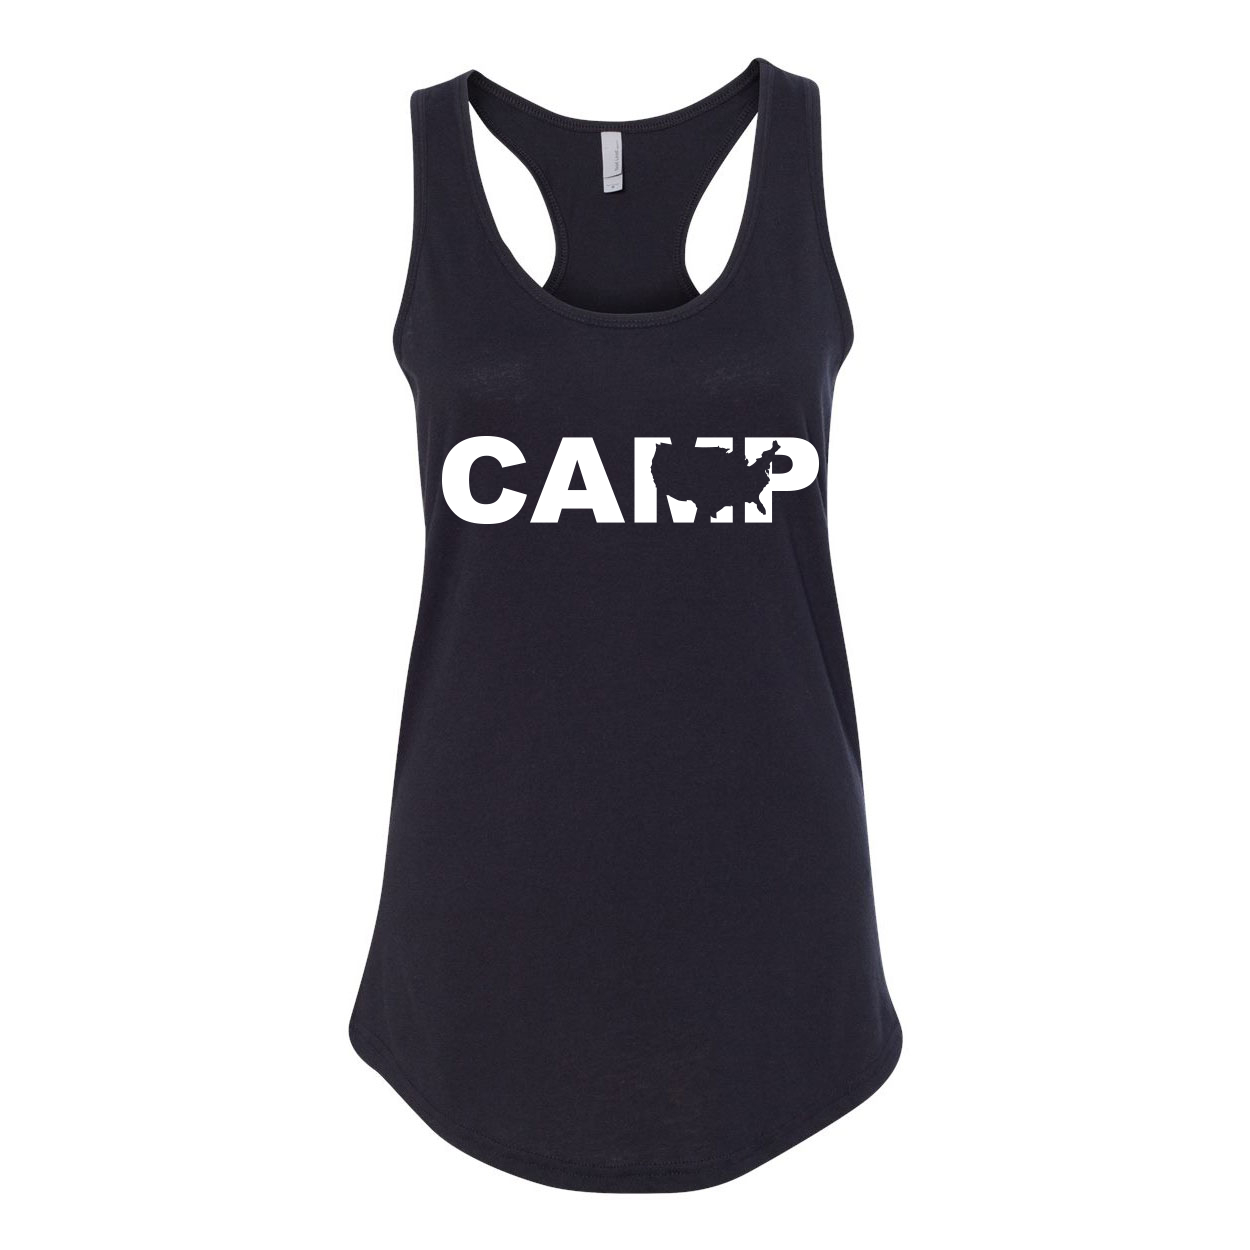 Camp United States Classic Women's Racerback Tank Top Black (White Logo)